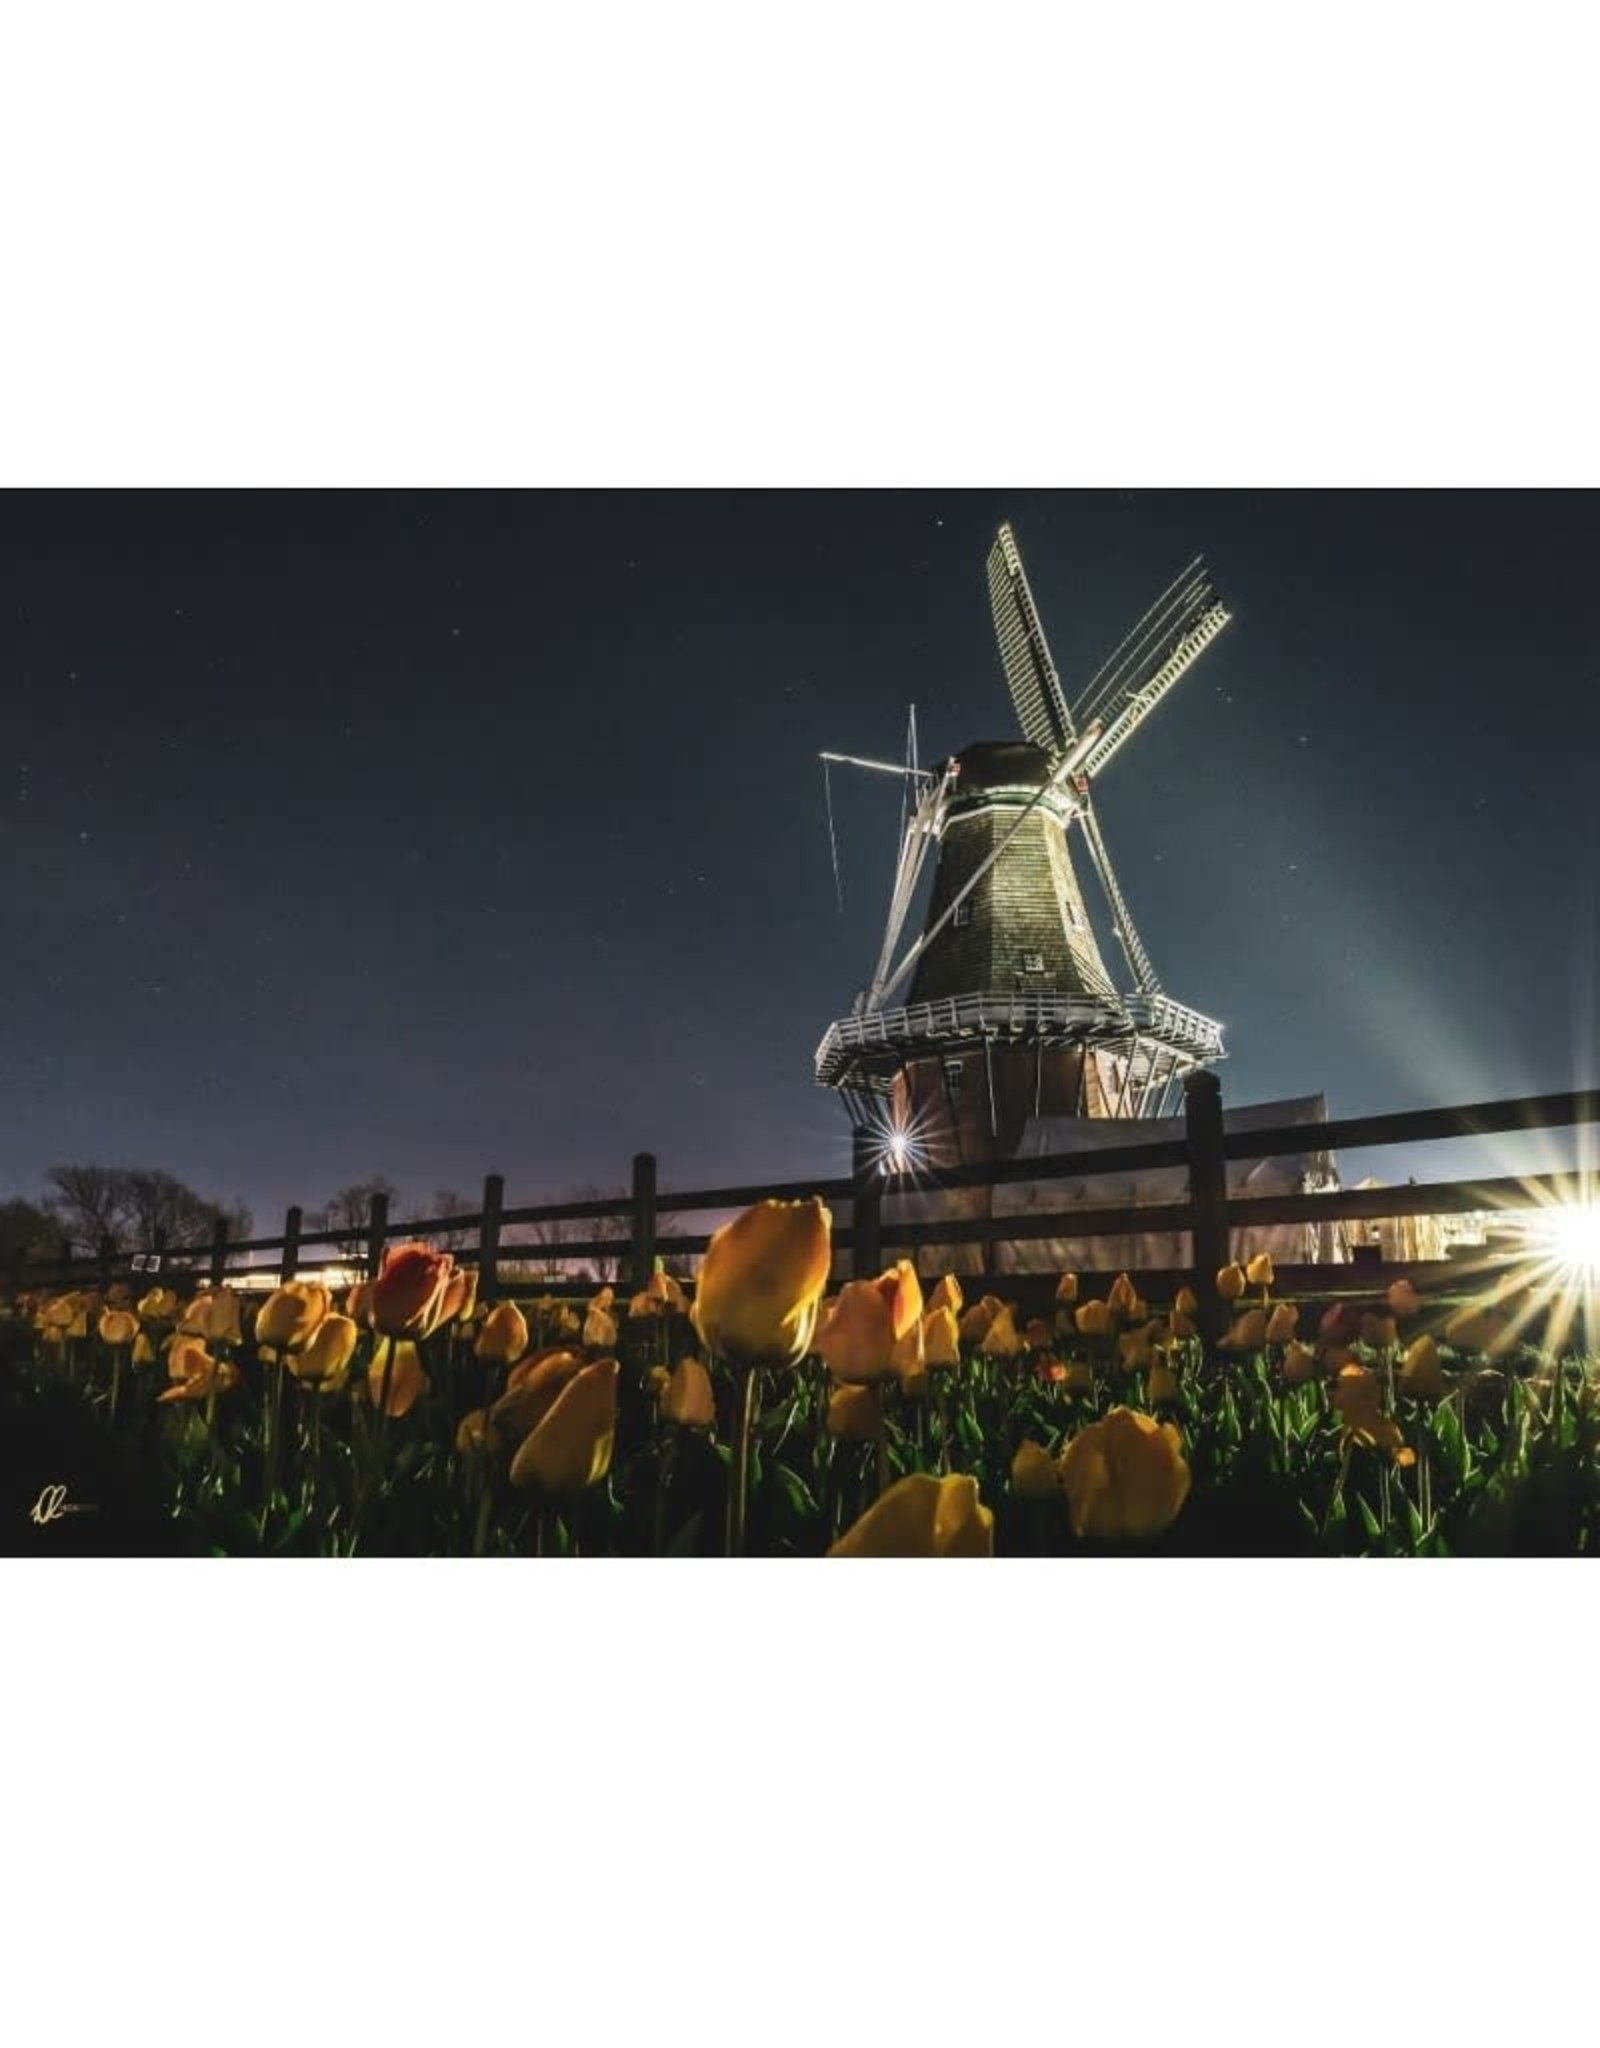 Nick Irwin Images Holland Windmill